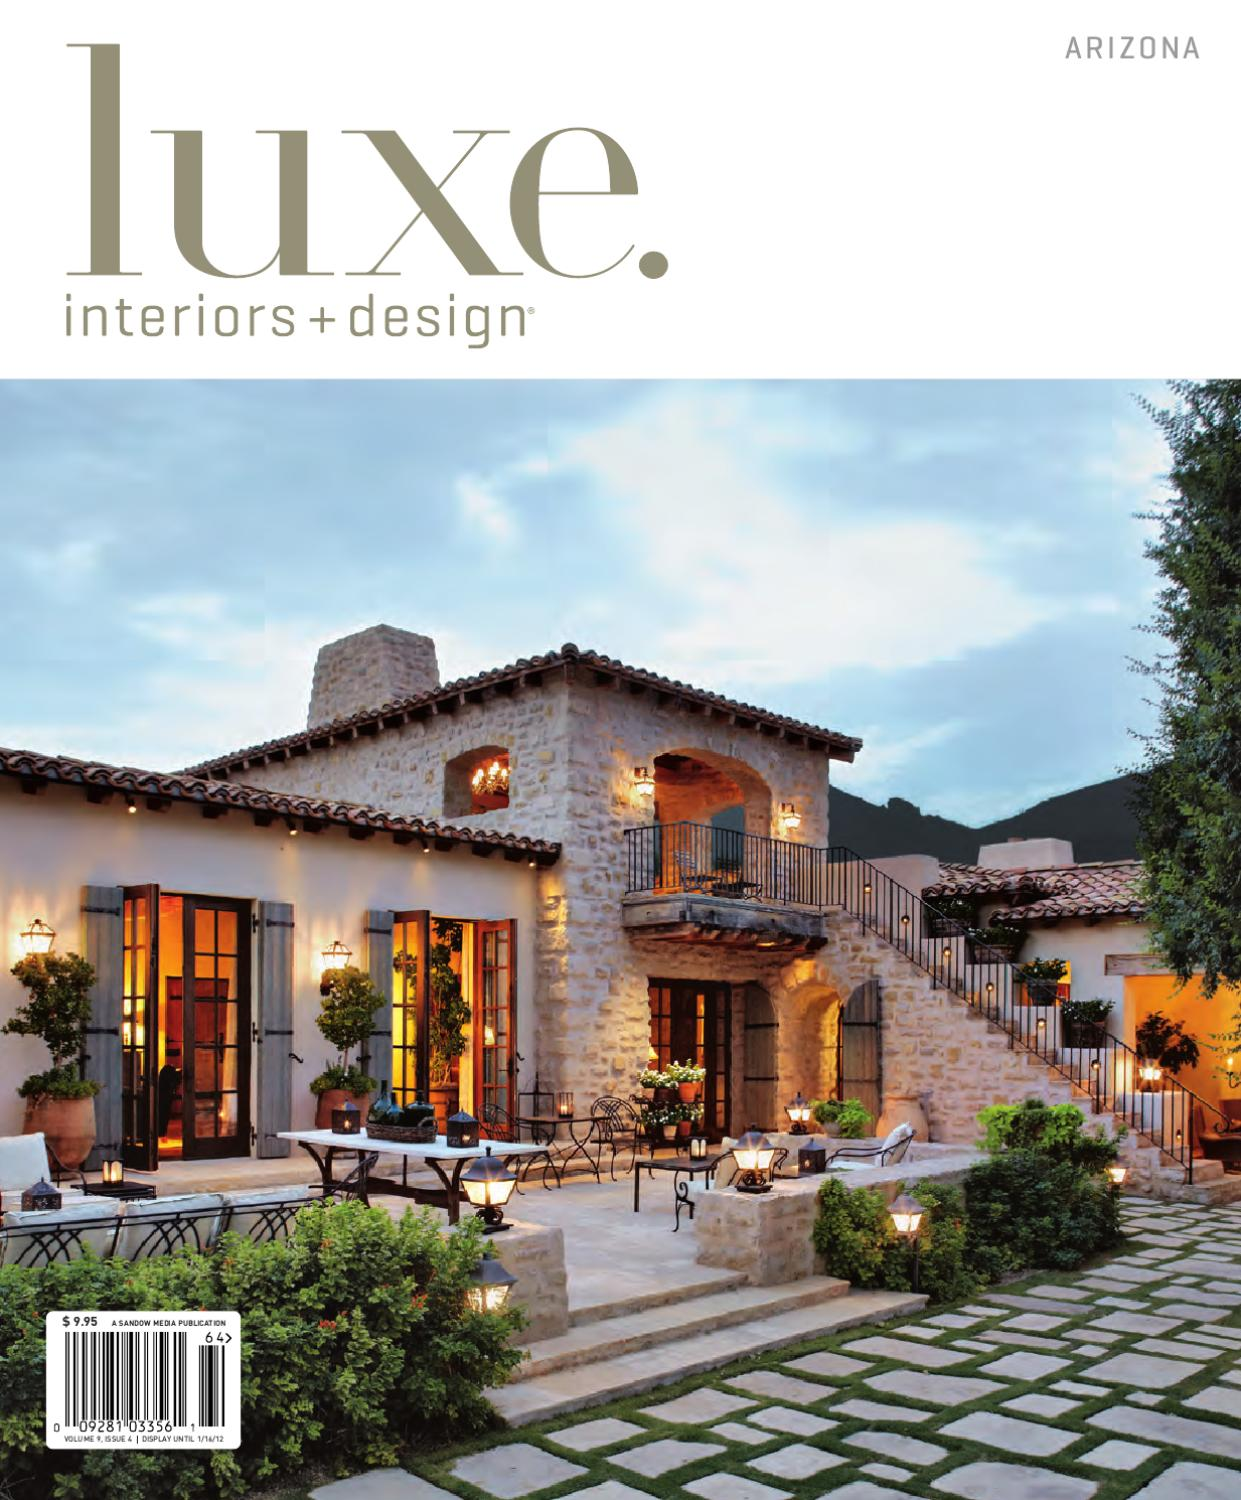 Luxe interior design arzona 13 by sandow media issuu for Arizona home design